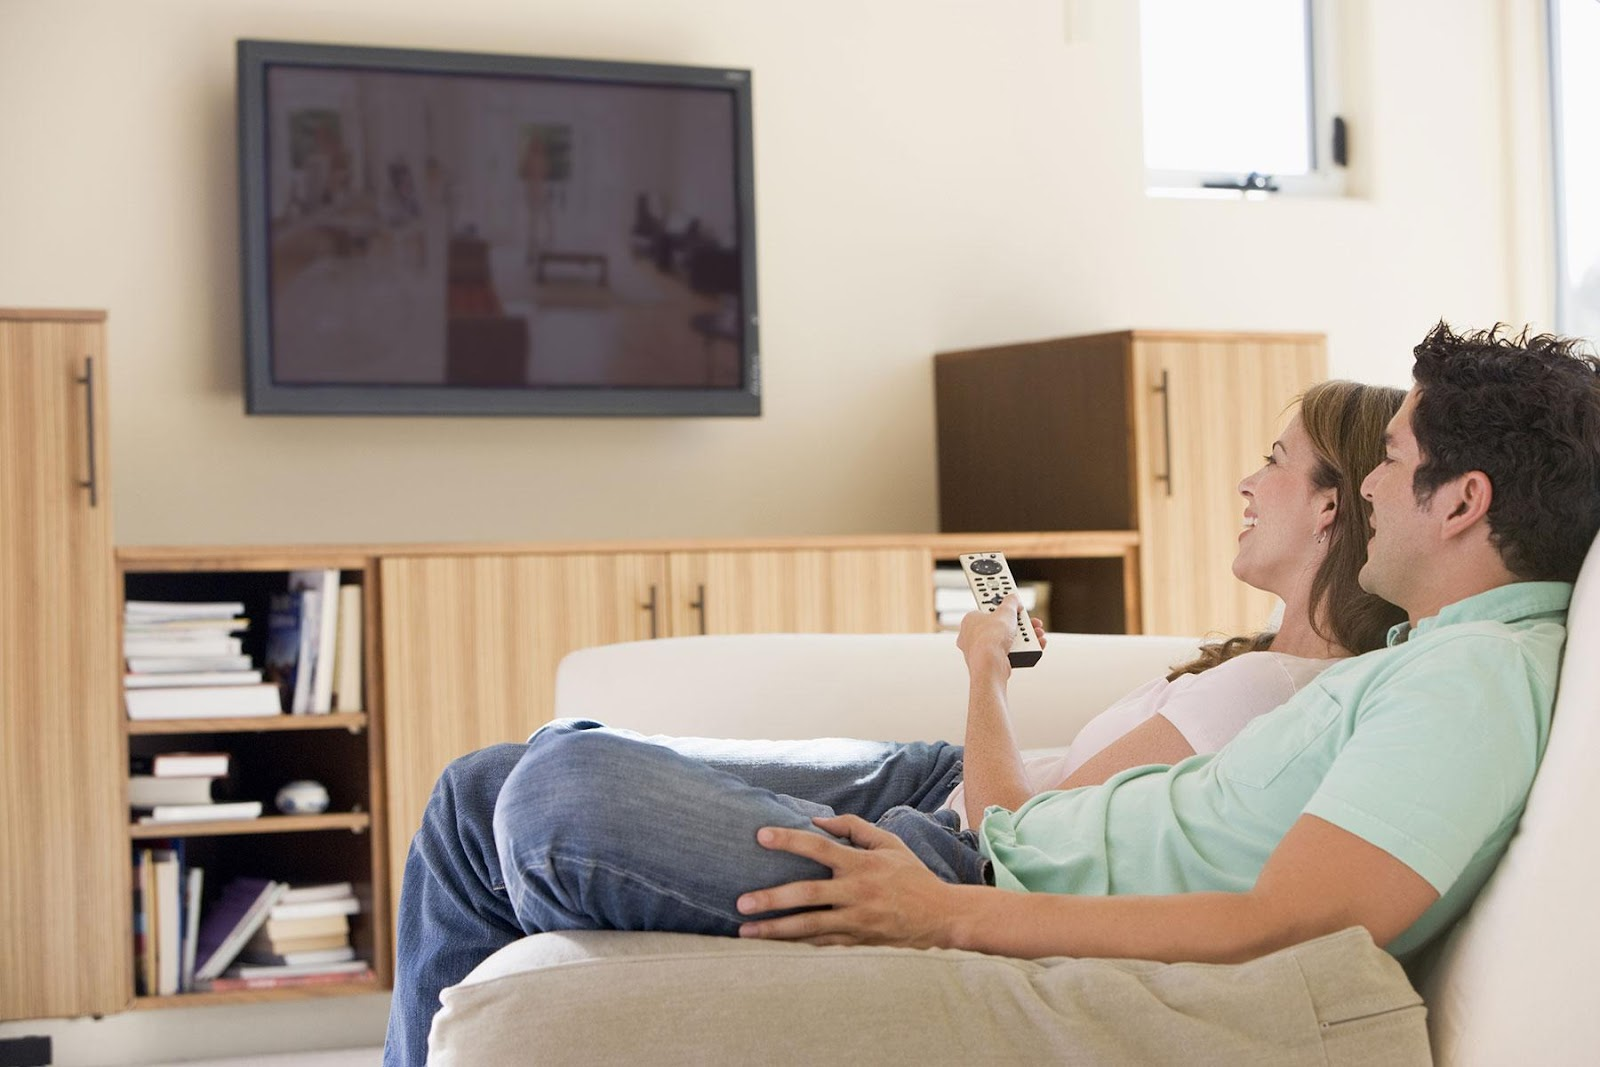 Assistive Listening Devices for Watching TV | The MED-EL Blog